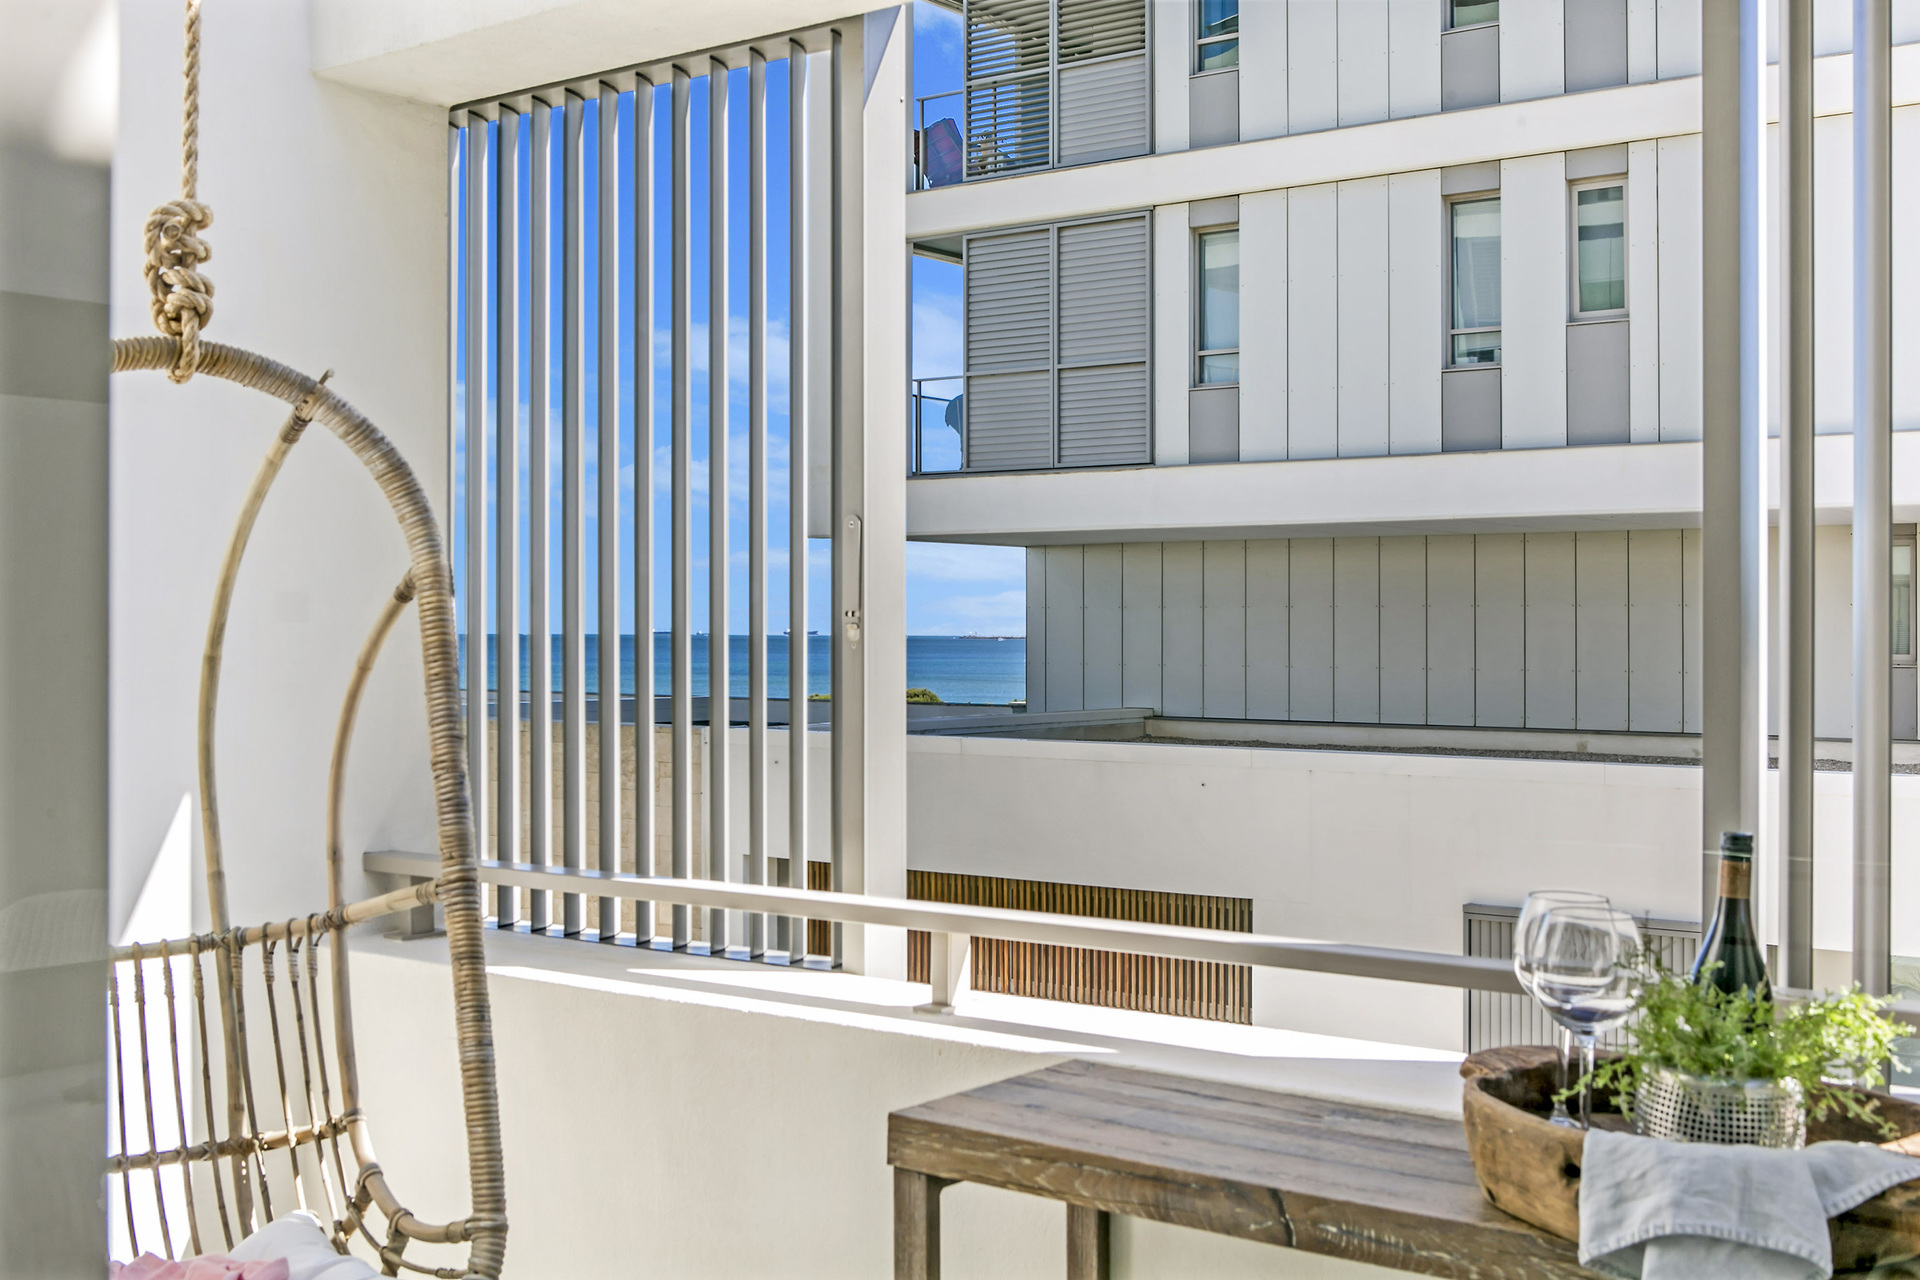 23/23 Ocean Drive North Coogee